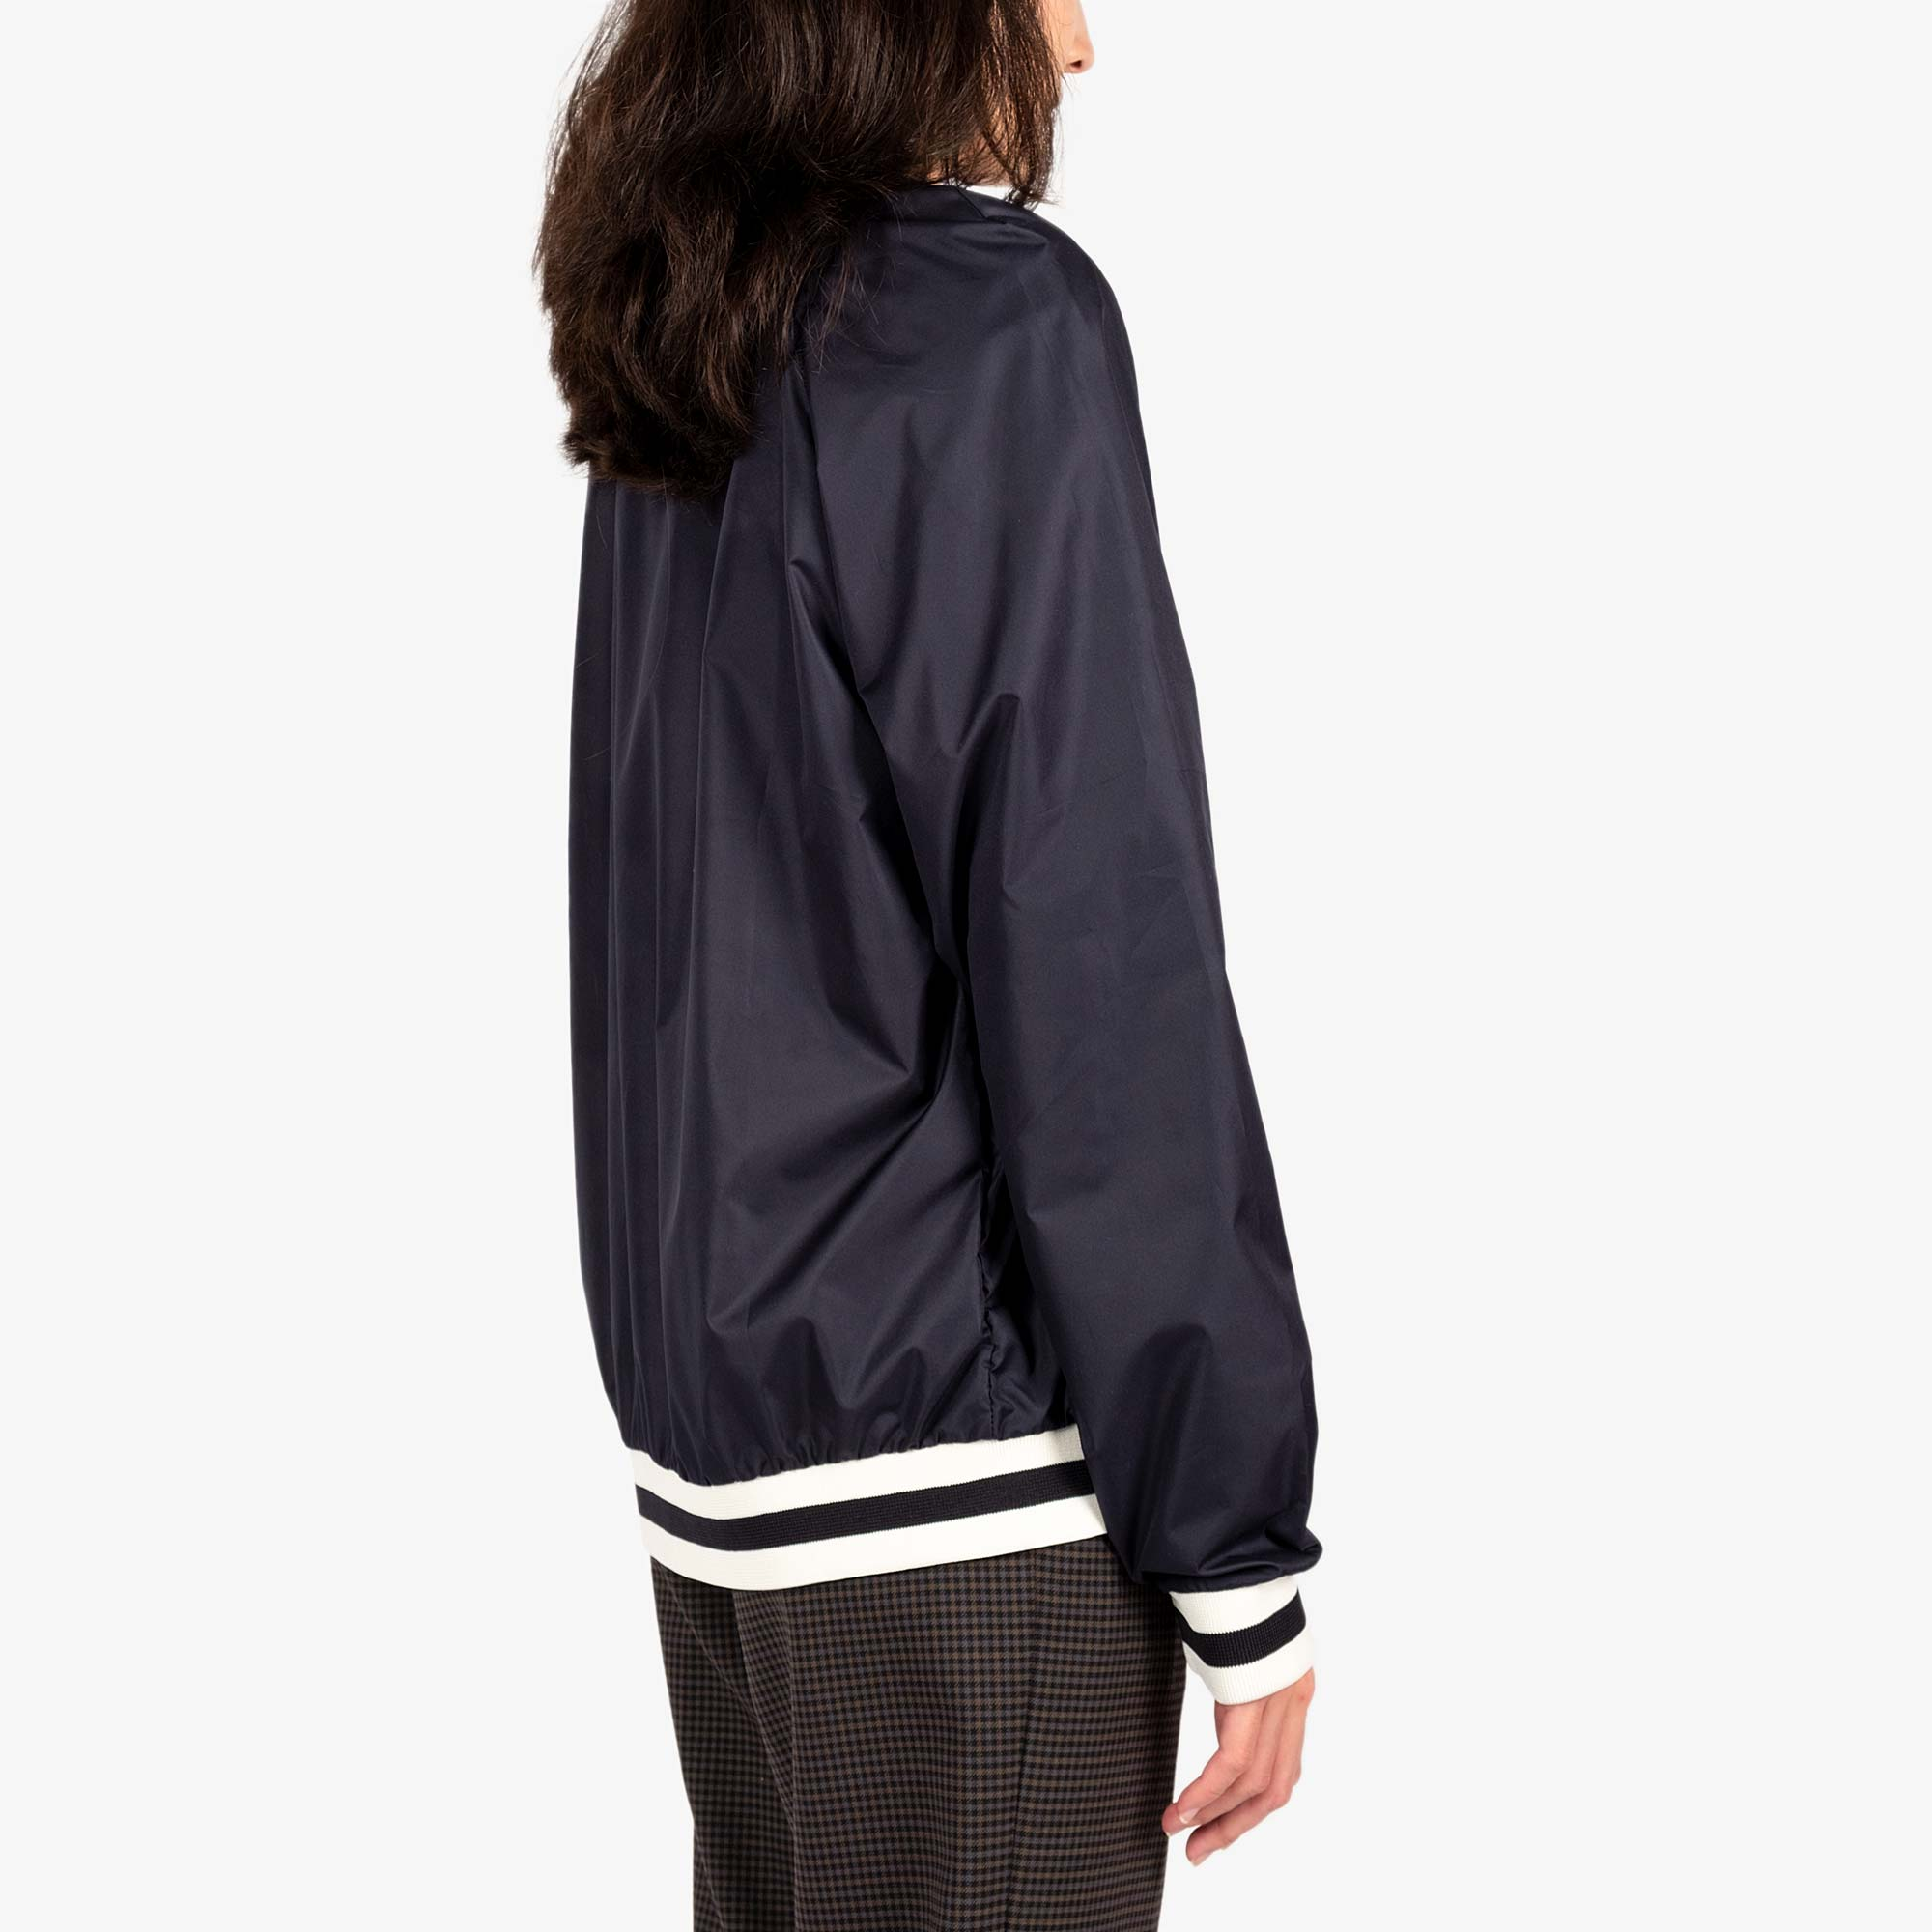 Maison Kitsune Womens Windbreaker - Navy 6